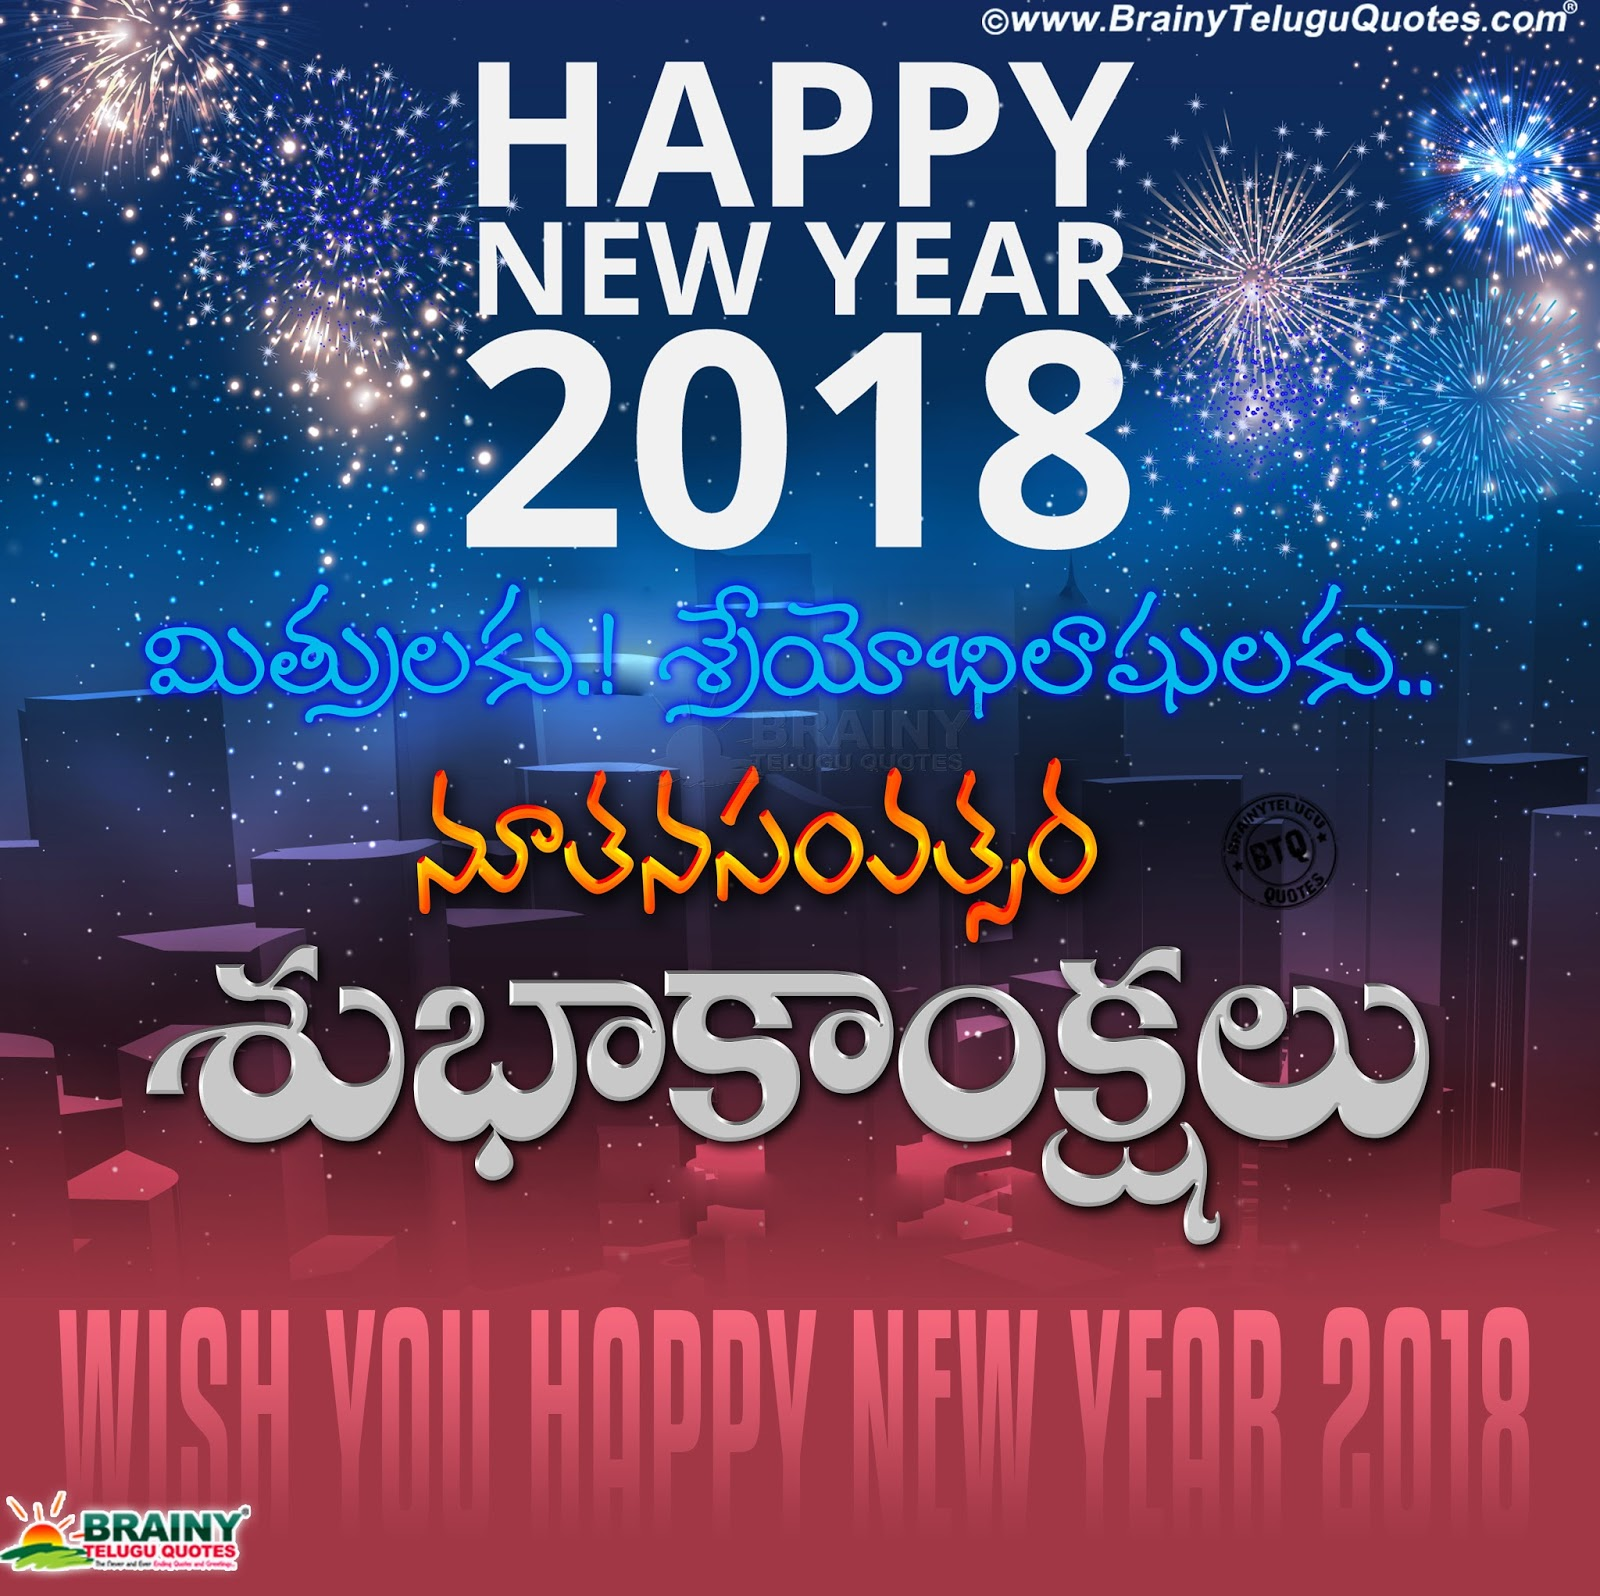 2018 Latest New Year Greetings Online Messages In Telugu